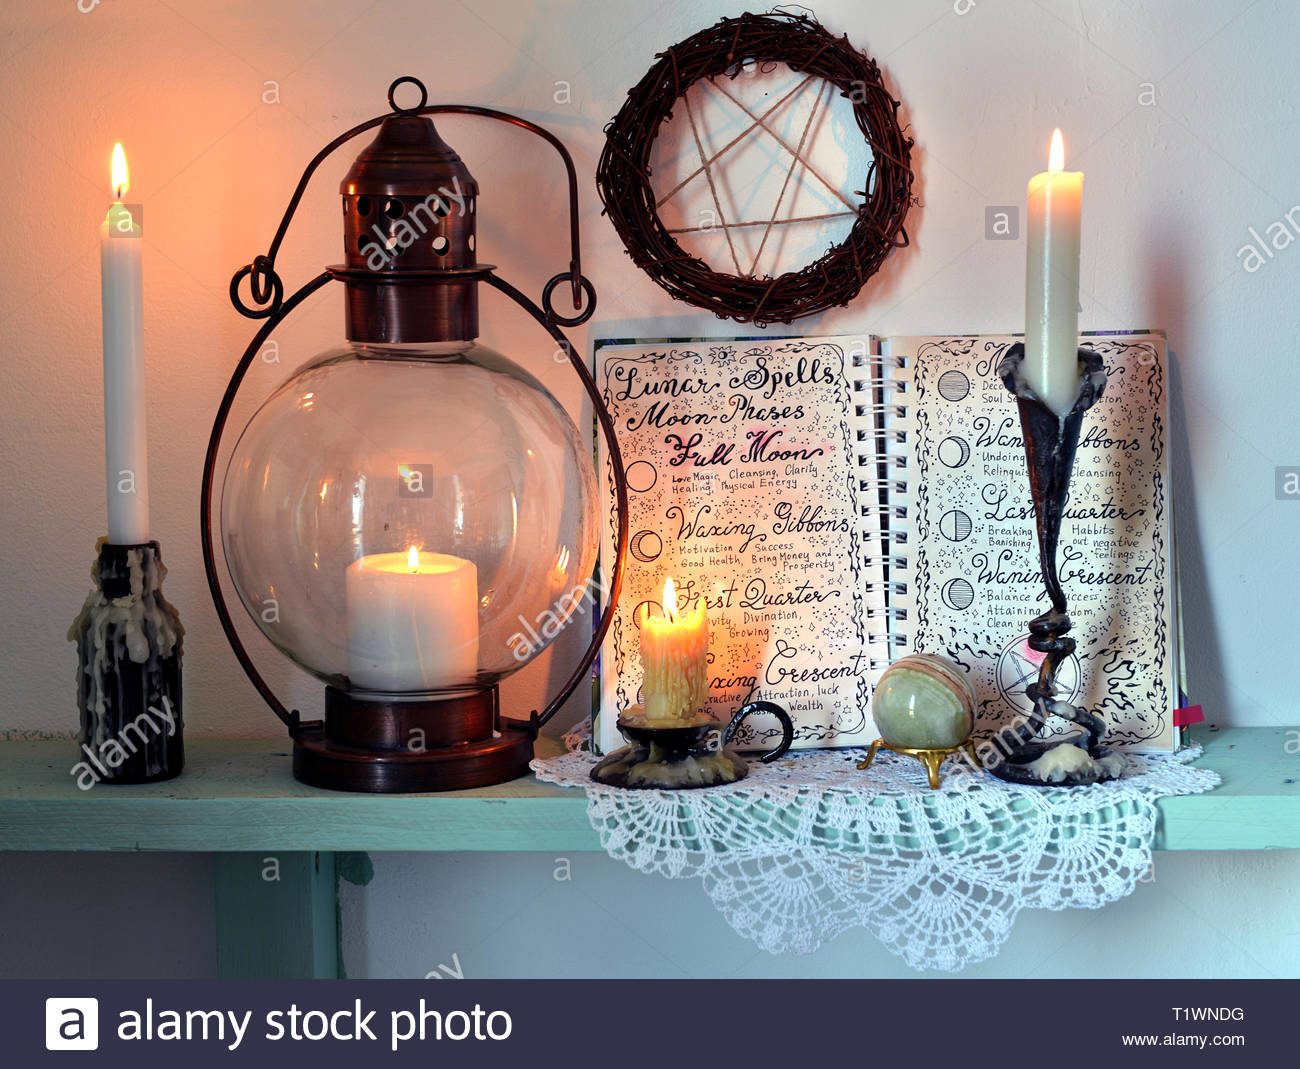 Magic gothic ritual  Wicca, esoteric, divination and occult